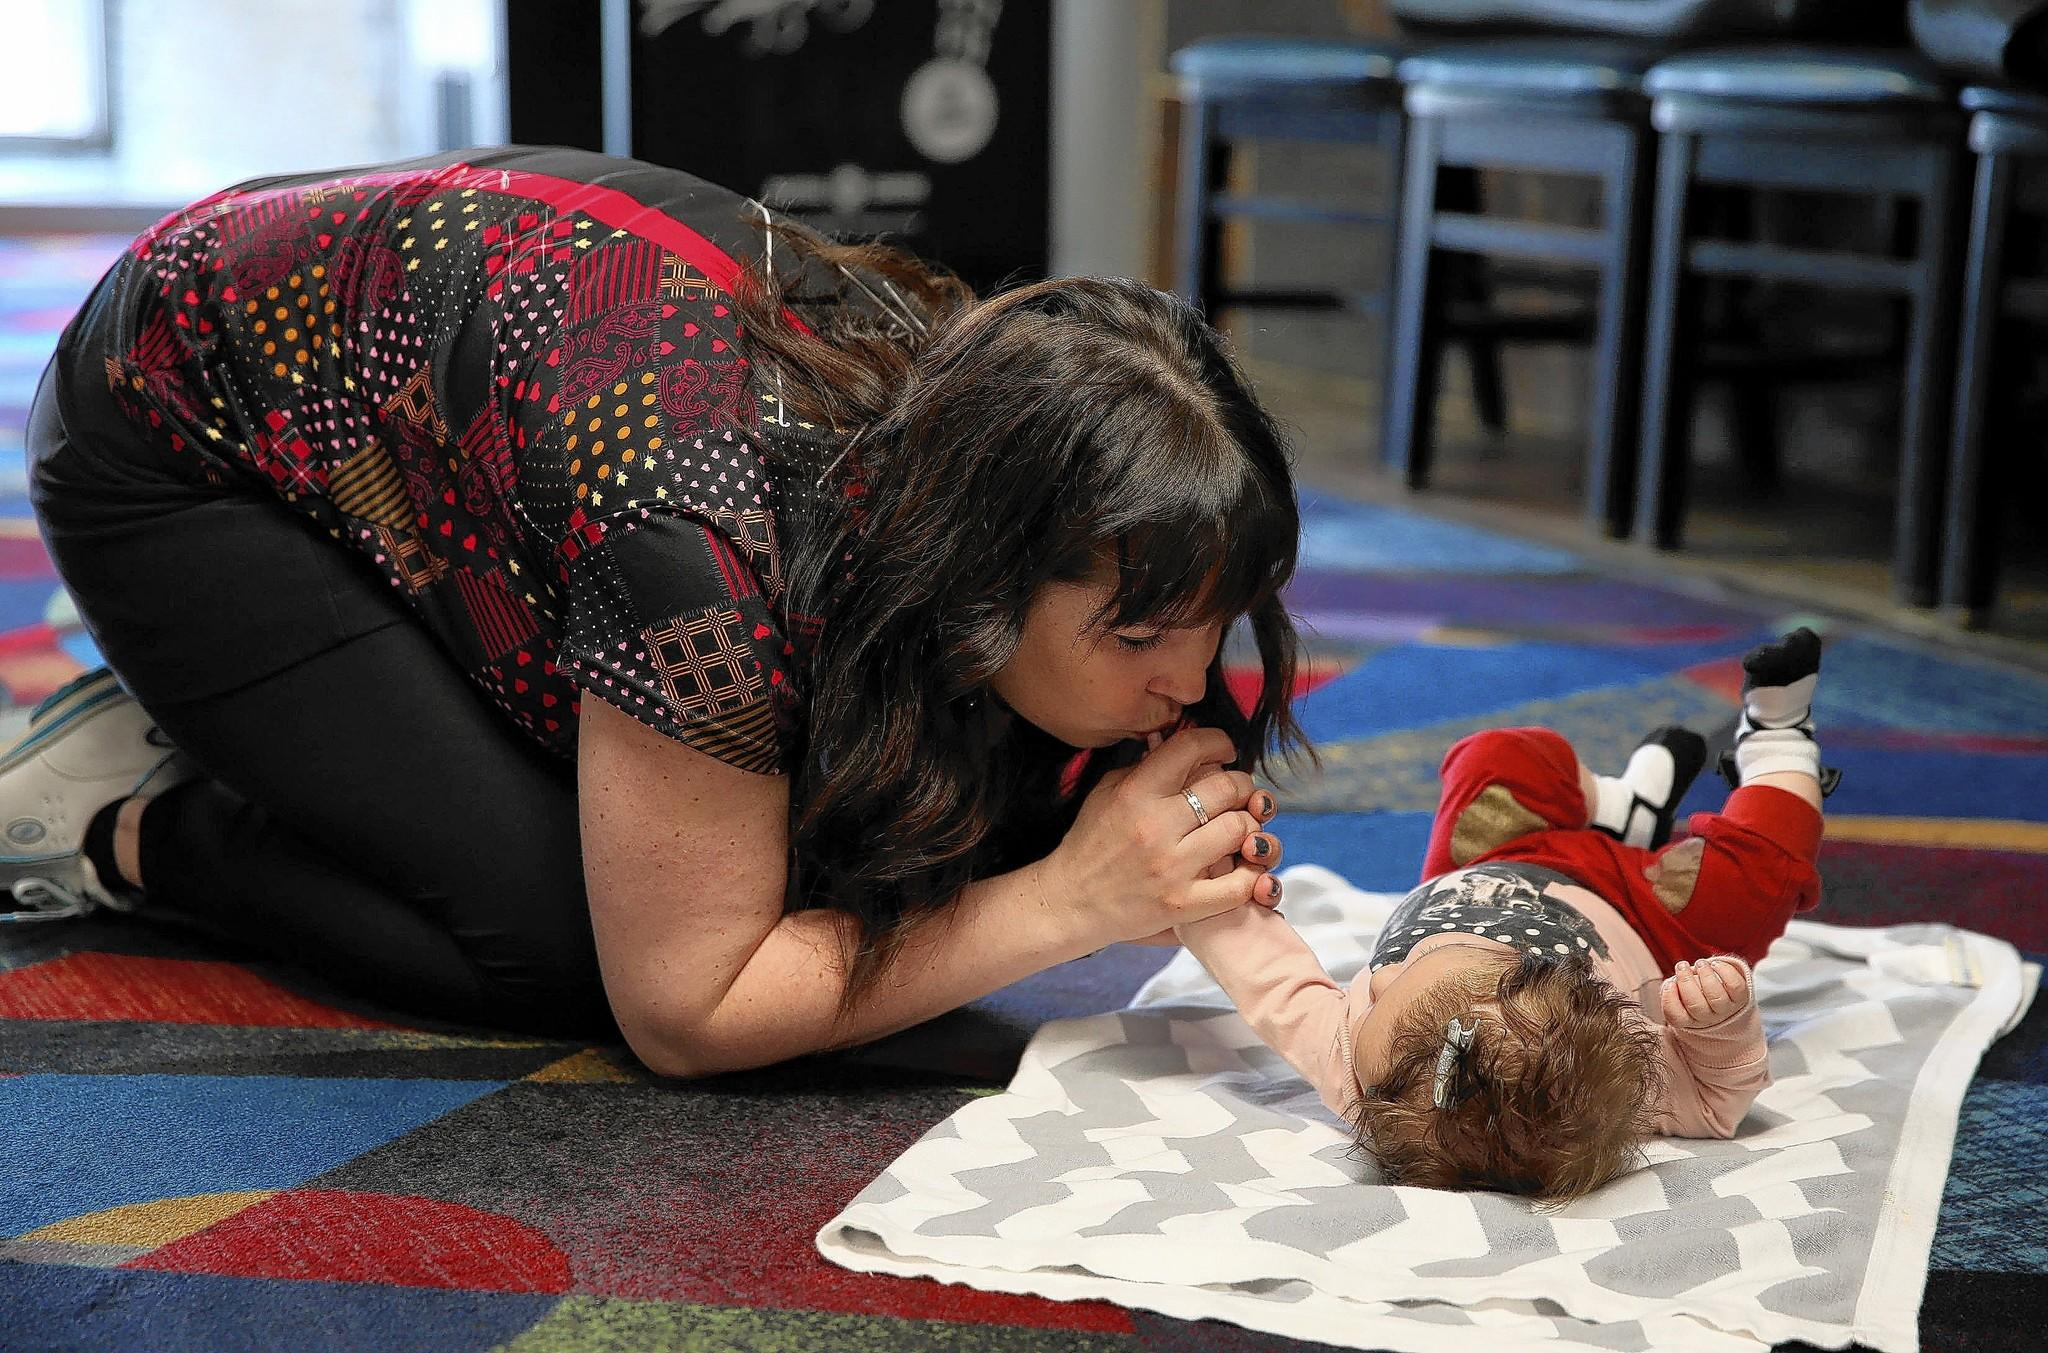 Diandra Asbaty, a professional bowler and mother of two, kisses her three-month-old baby Jersey Asbaty, before practice at the Diversey River Bowl.